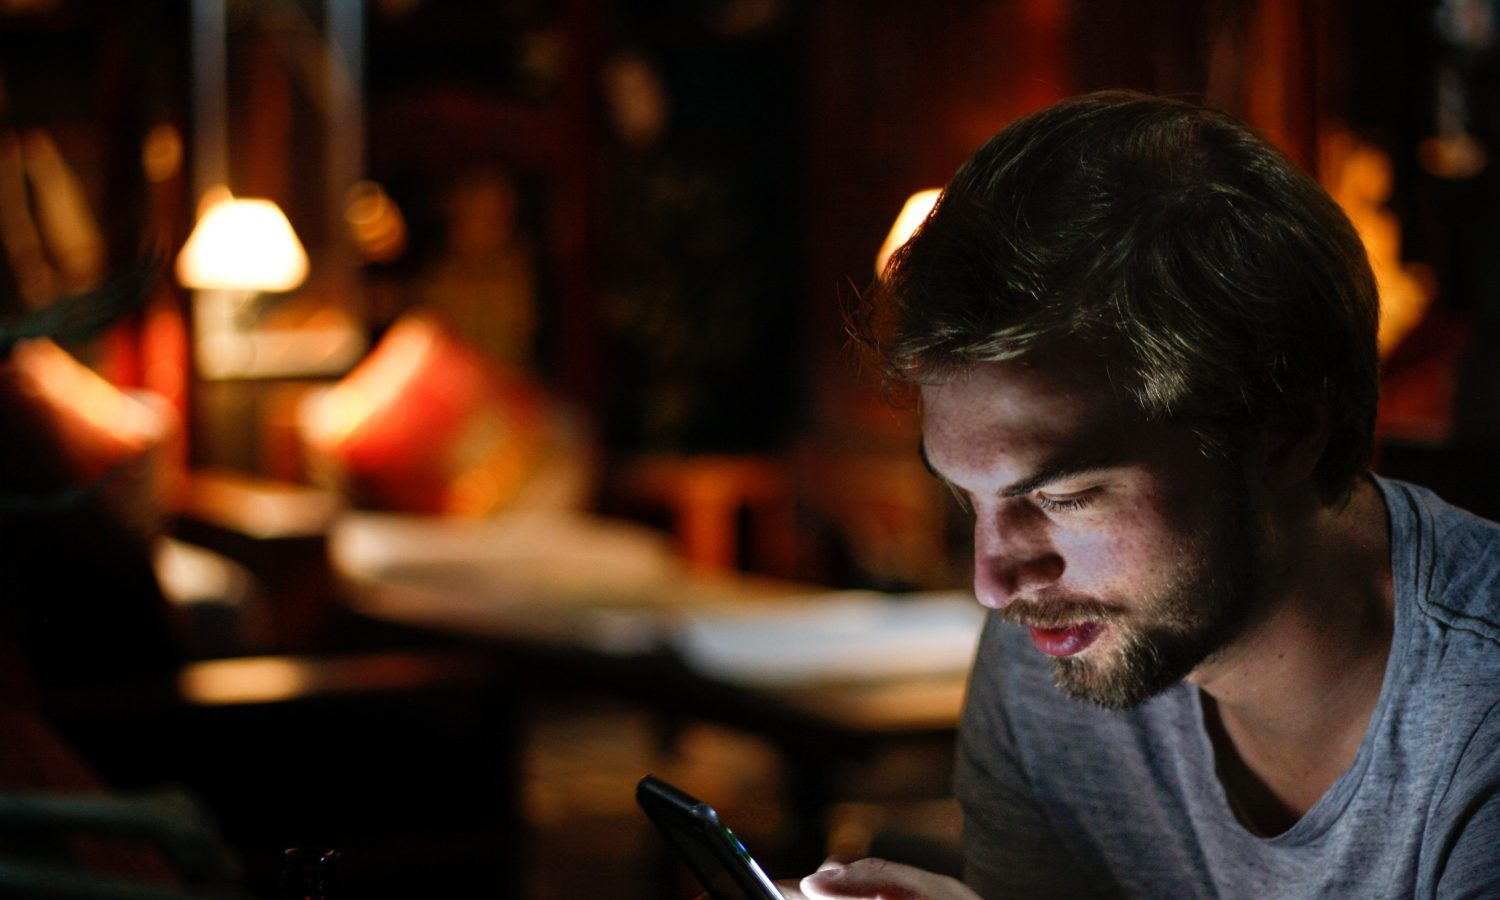 There Are Psychological Benefits Of Texting Vs Talking, Even With People You Live With